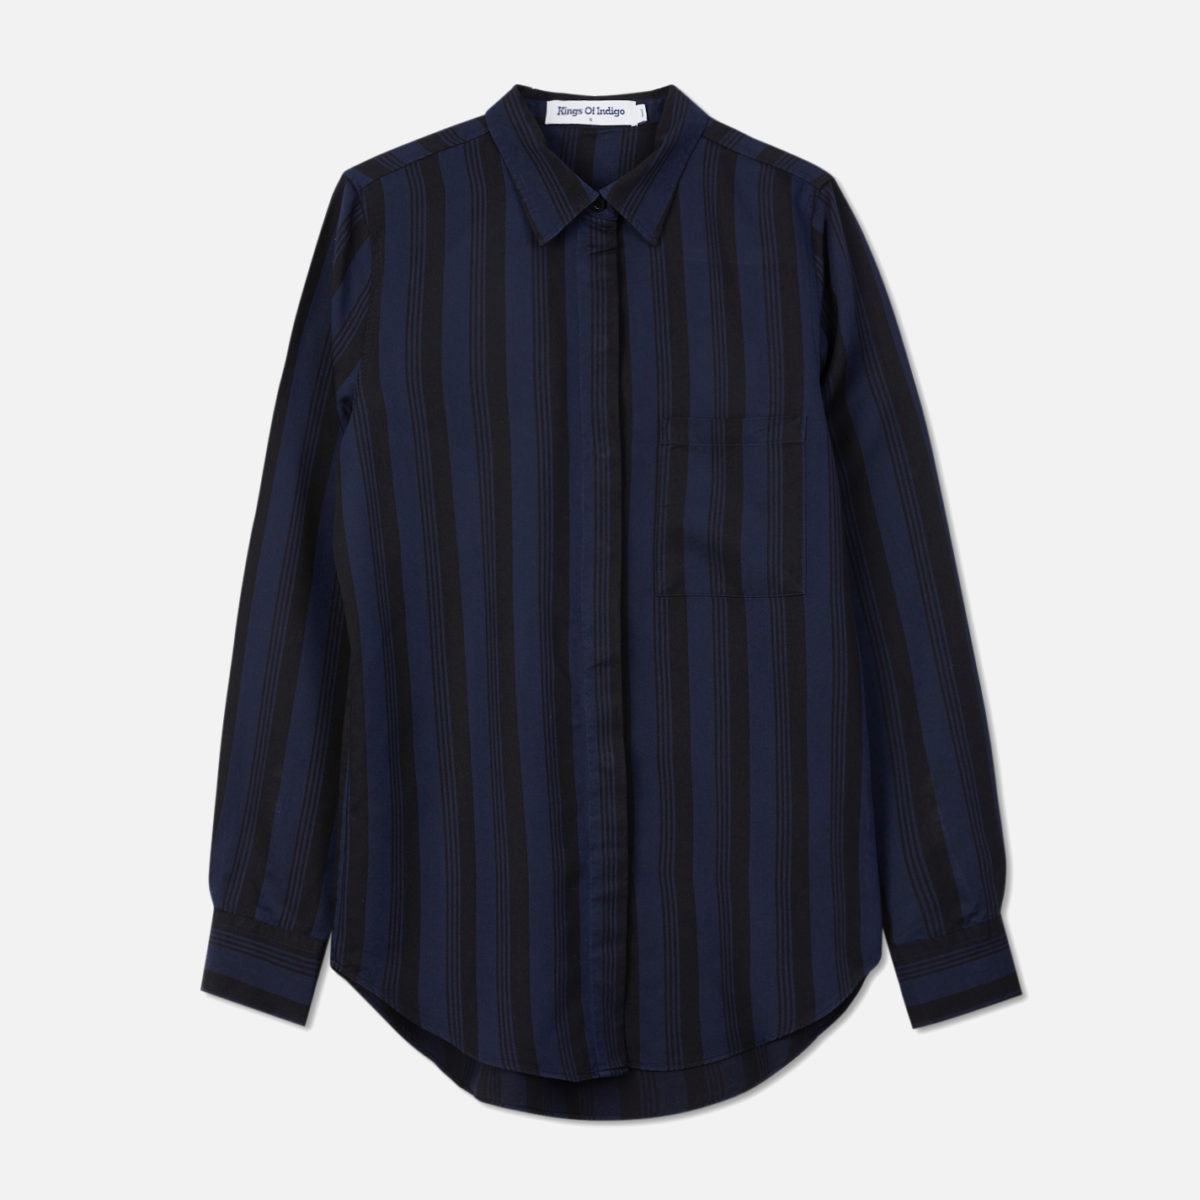 Damblus i 100% Tencel från KOI - Kings of Indigo